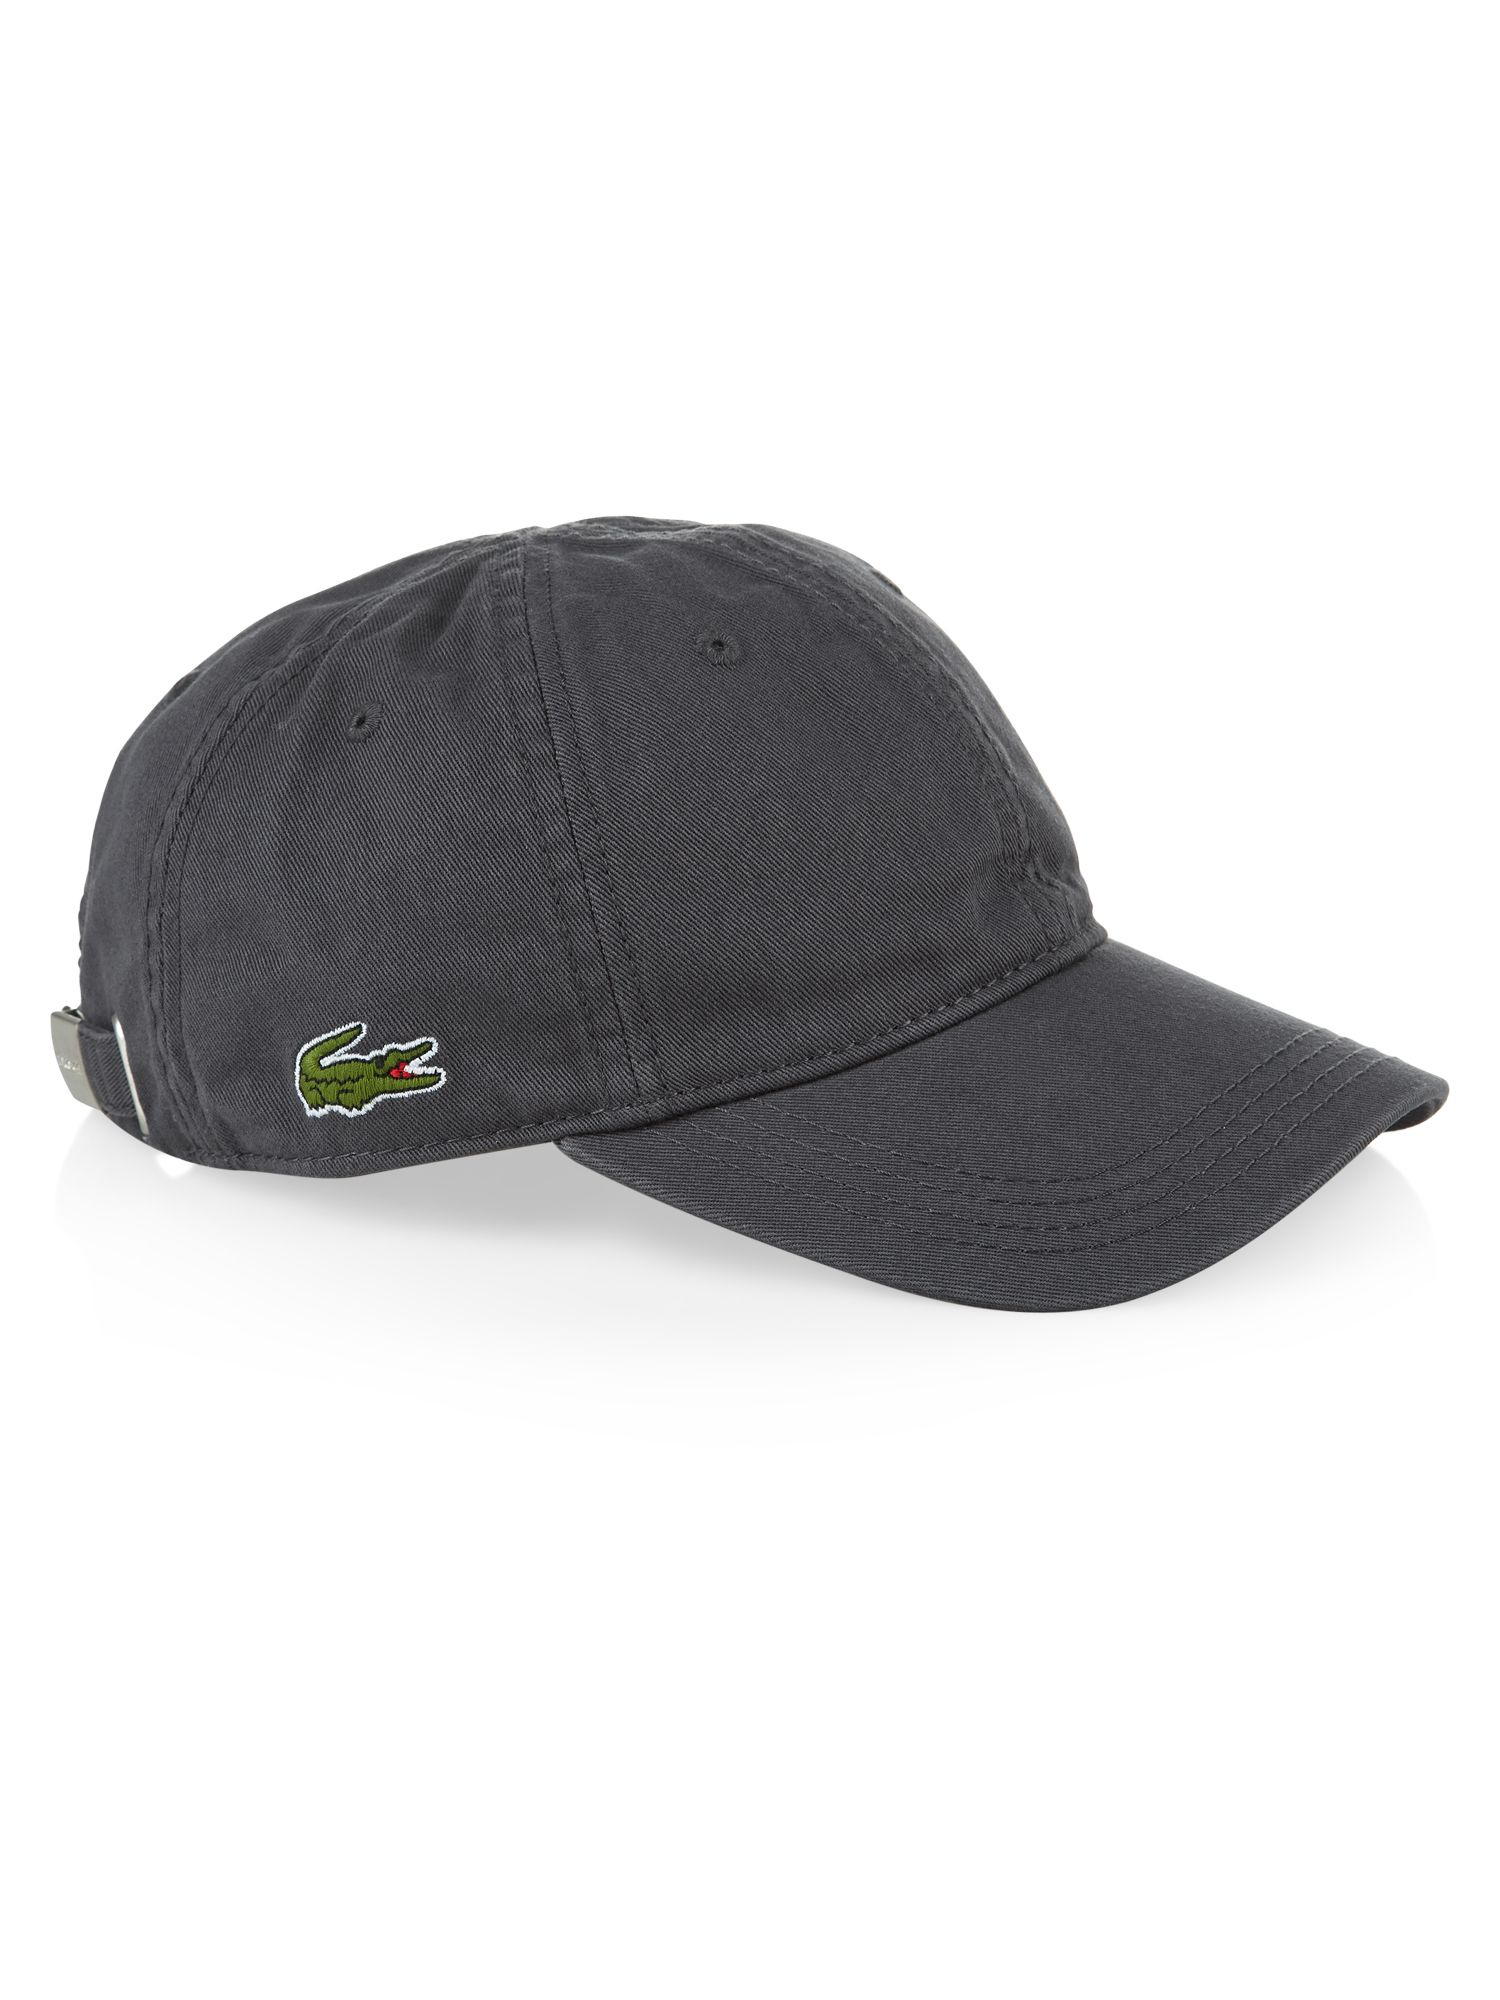 c14064e39f7 ... Lacoste Plain Cap in Gray for Men - Lyst new photos 73ad2 6a650  Lacoste  Mens Baseball ...